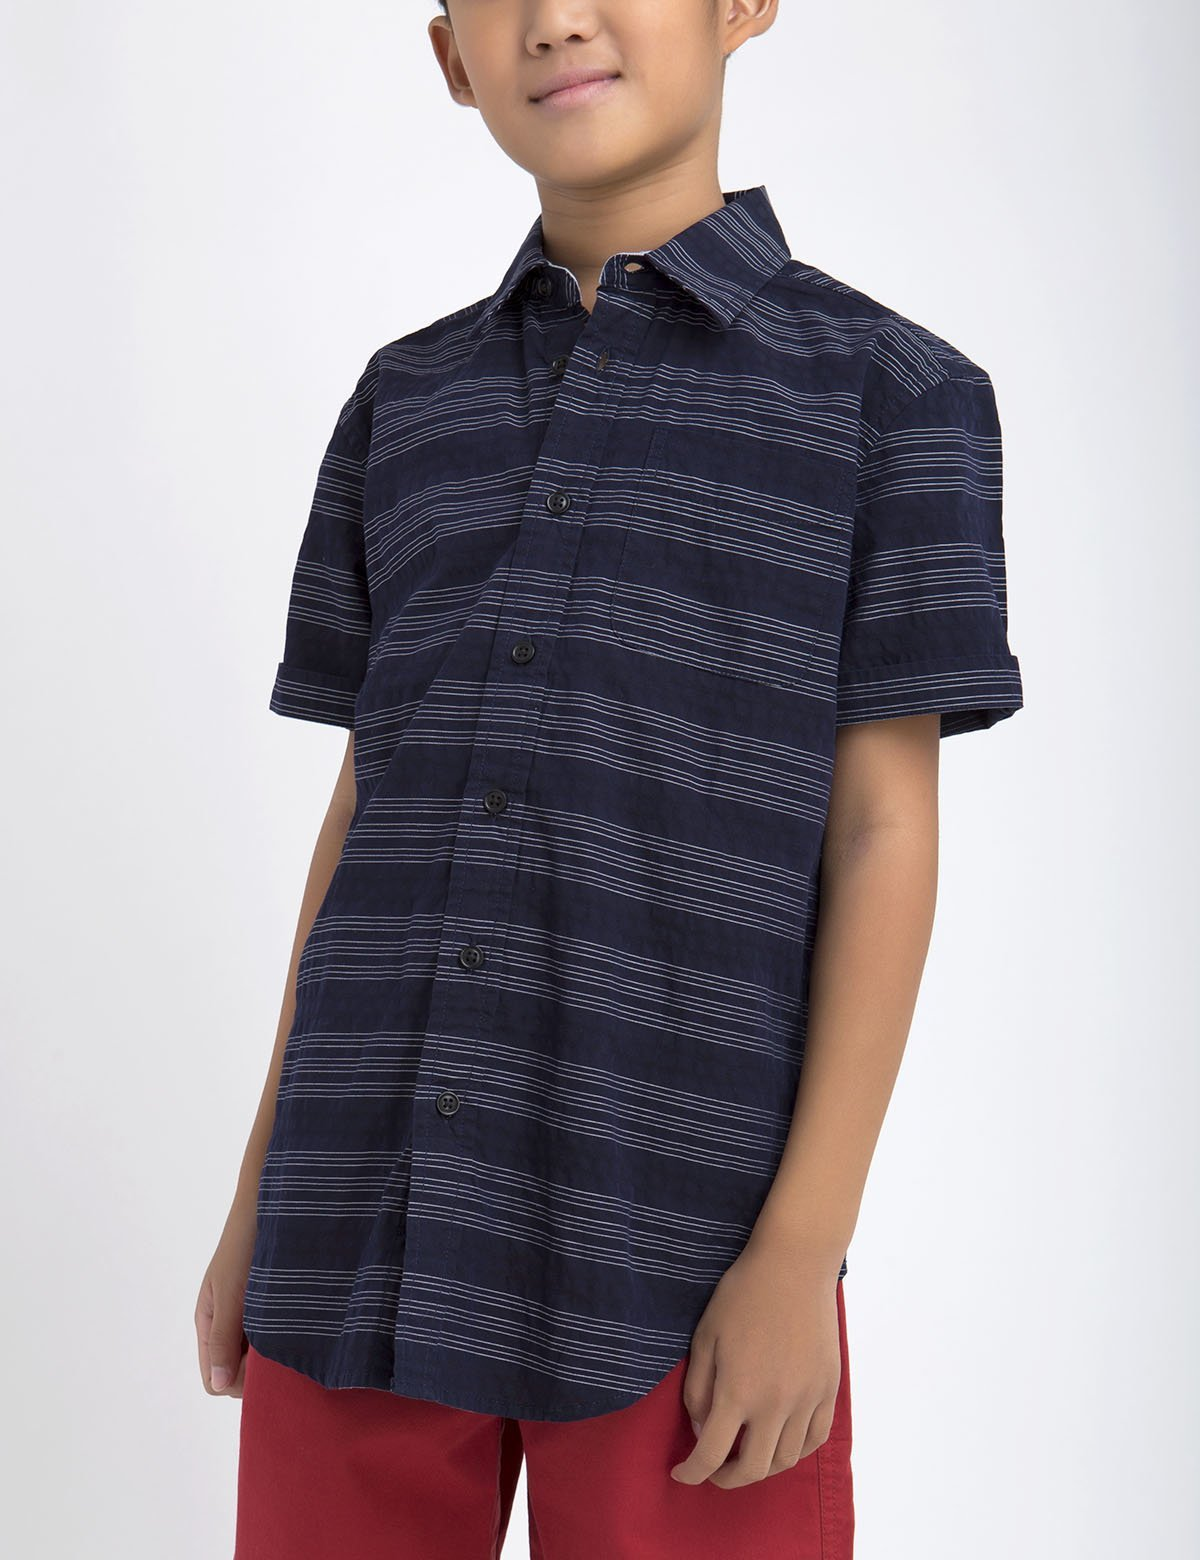 BOYS BLACK MALLET HORIZONTAL DOBBY SHORT SLEEVE SHIRT